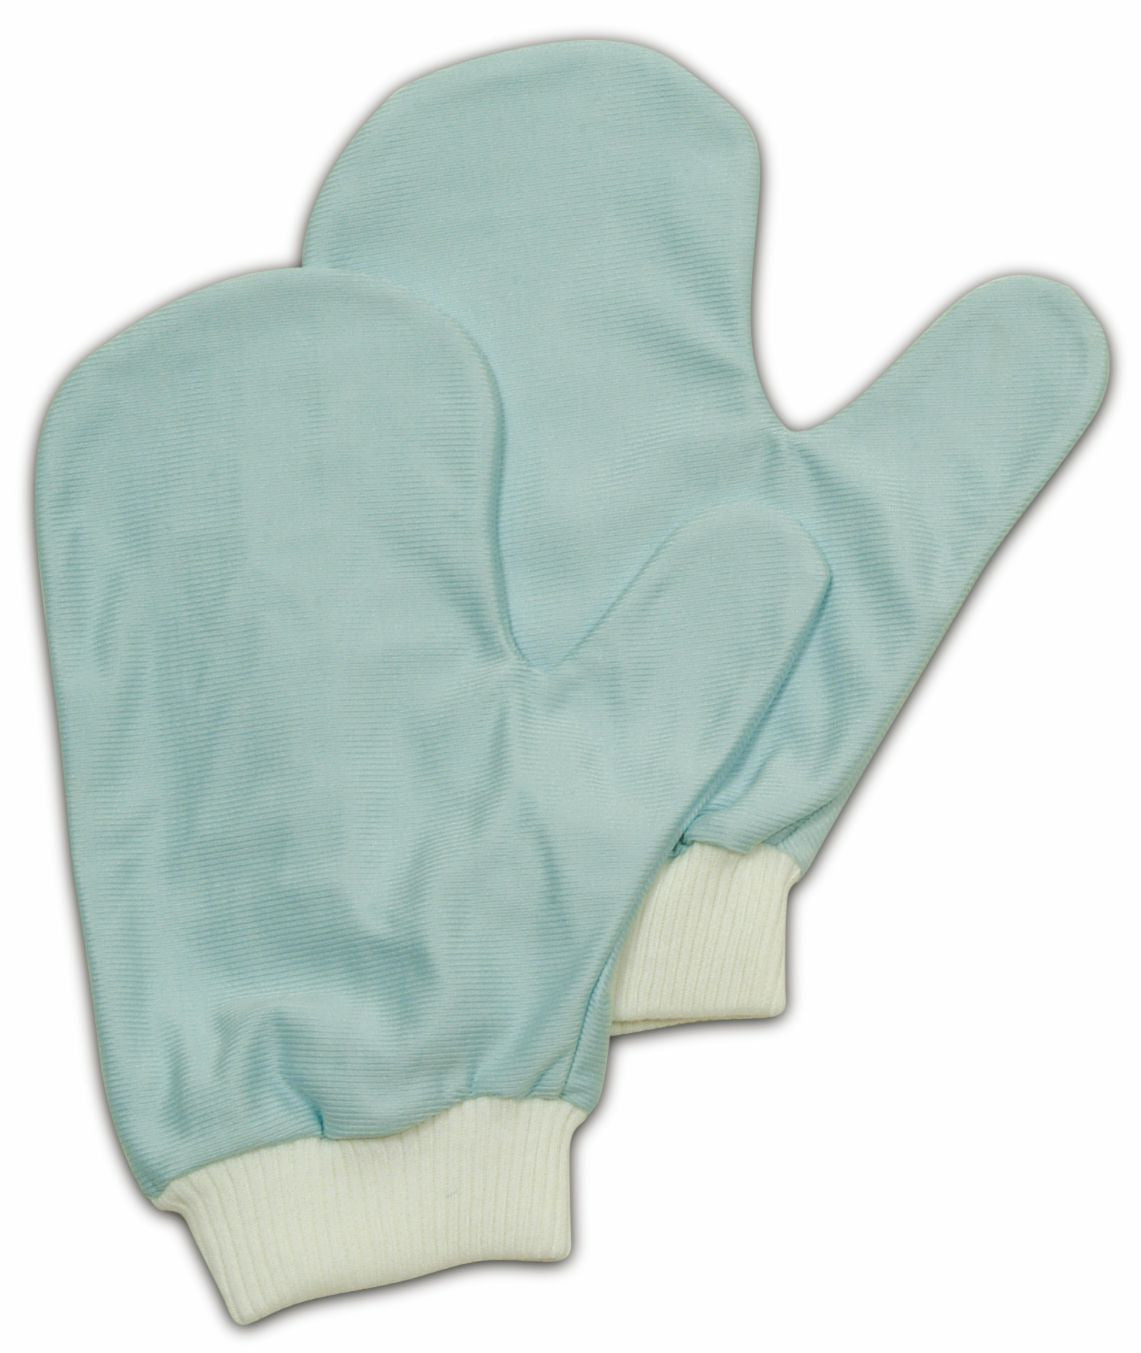 MICROFIBER GLASS MITT W/THUMB 8¾ L-BLUE